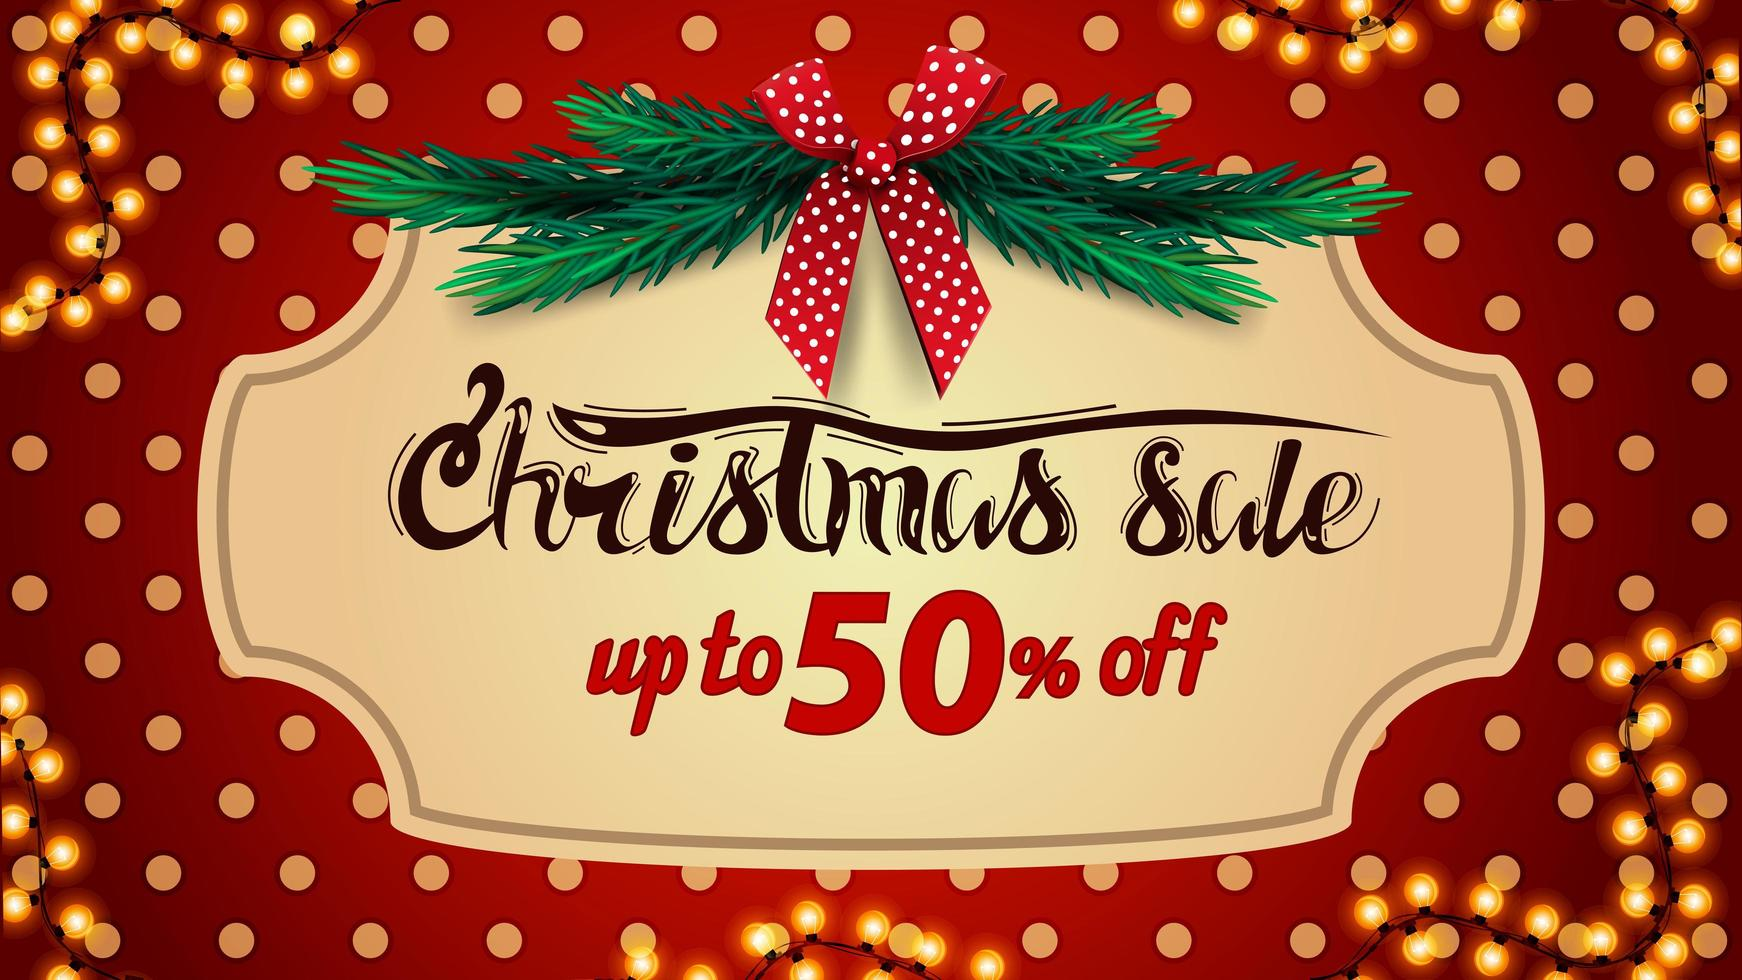 Christmas sale, up to 50 off, red discount banner with polka dot texture on background, vintage frame, christmas tree branches and red bow vector